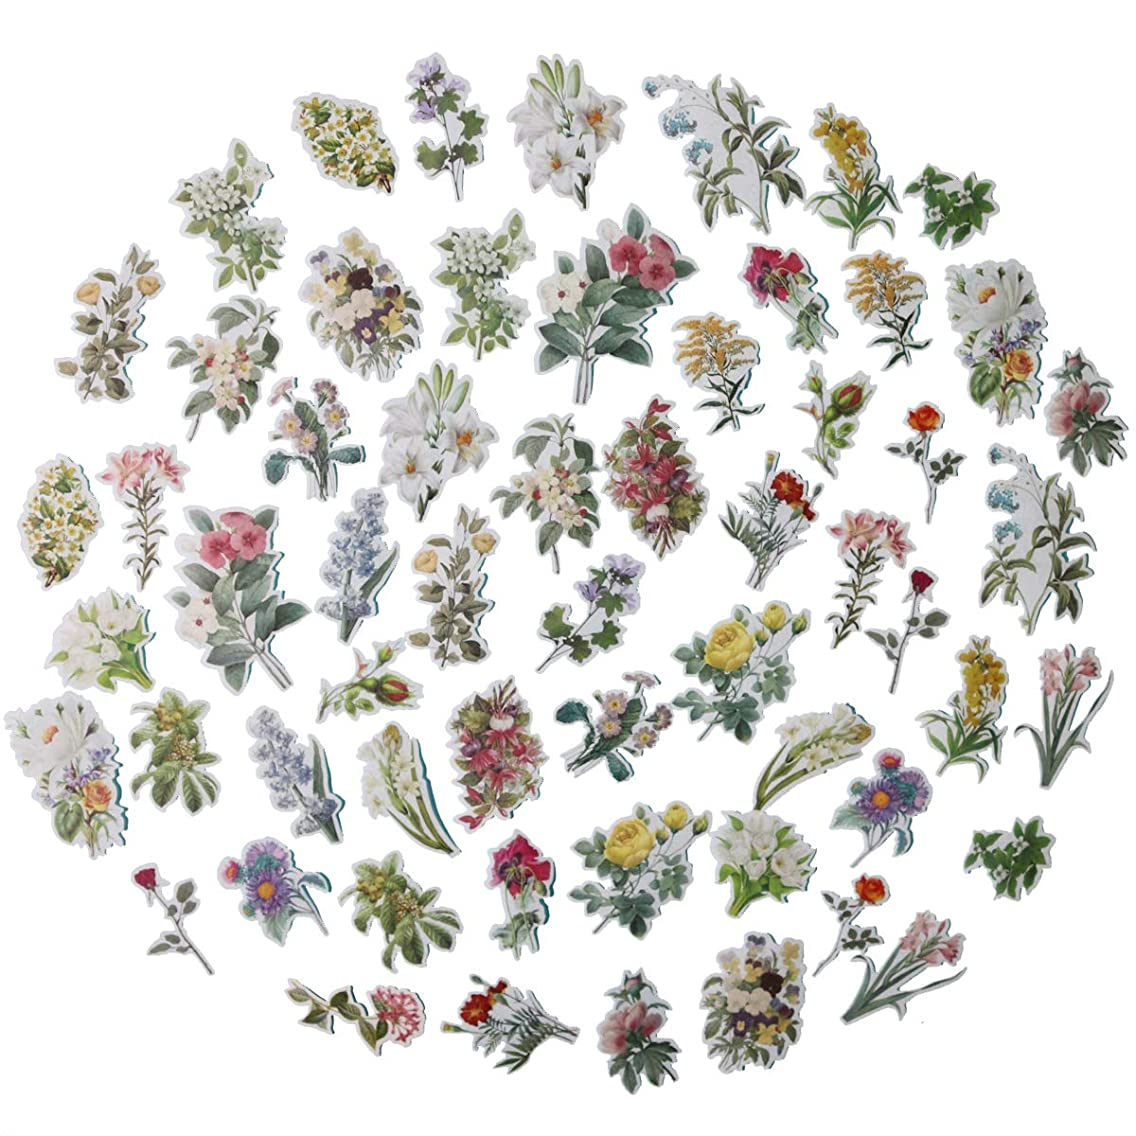 Super Cute 60pcs Watercolor Flowers Bloom Plants Stickers for Your Laptop, Water Bottle, and Scrapbook (Flowers Bloom)